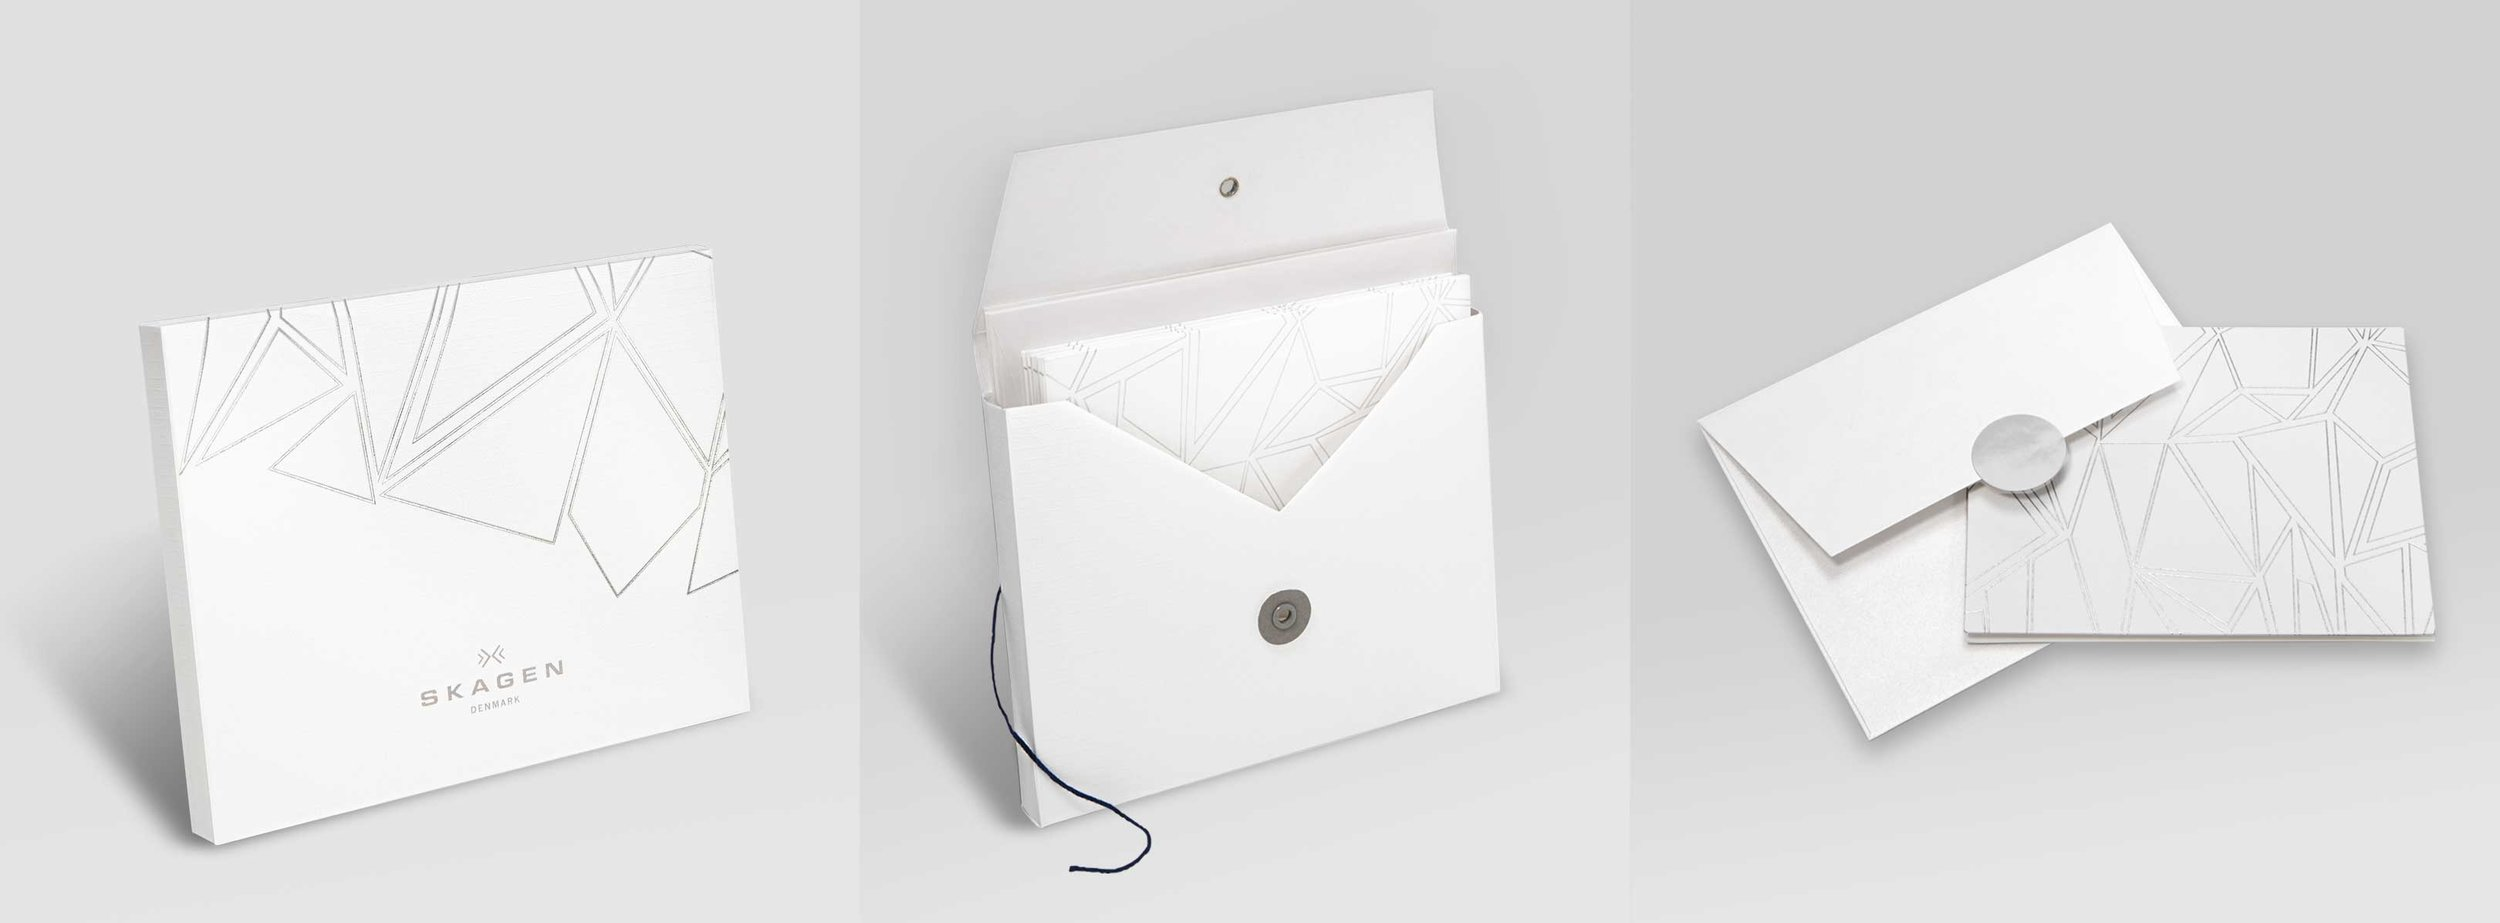 Custom card set design    (concept, mechanicals, sample management through production). Silver foil debossed paper cards and packaging with white shimmery, metallic paper individual envelopes with silver metallic closure stickers.